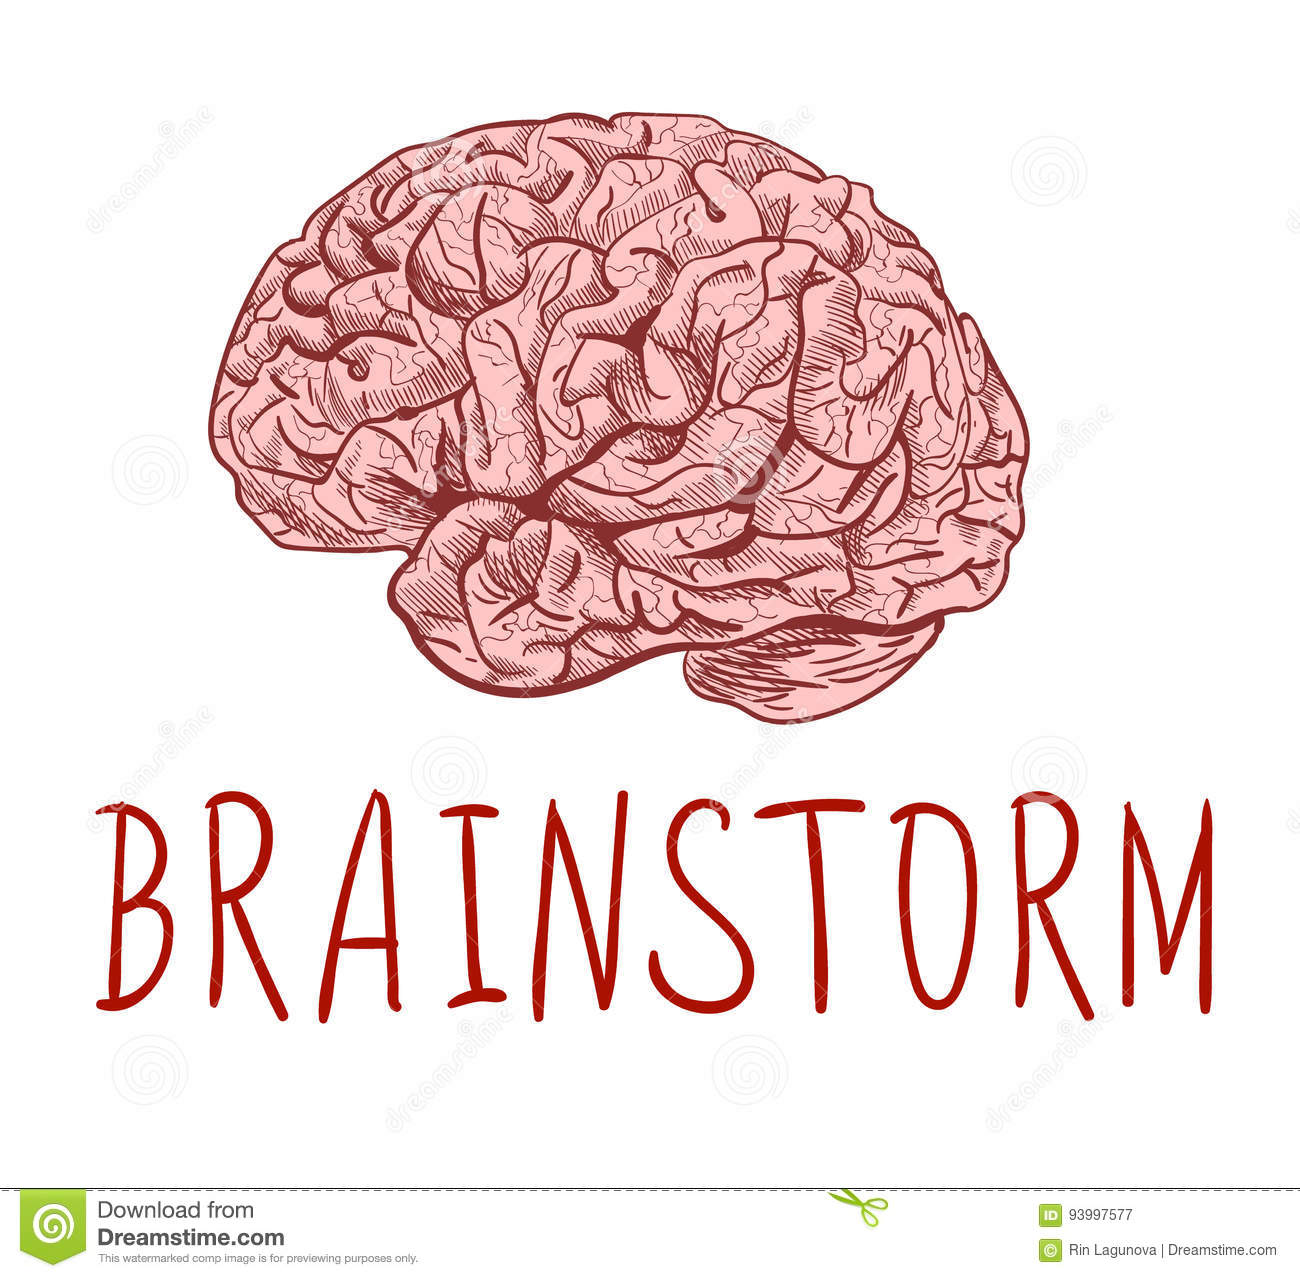 Brainstorm Handwritten Letters And Outline Drawing Of Human Brain